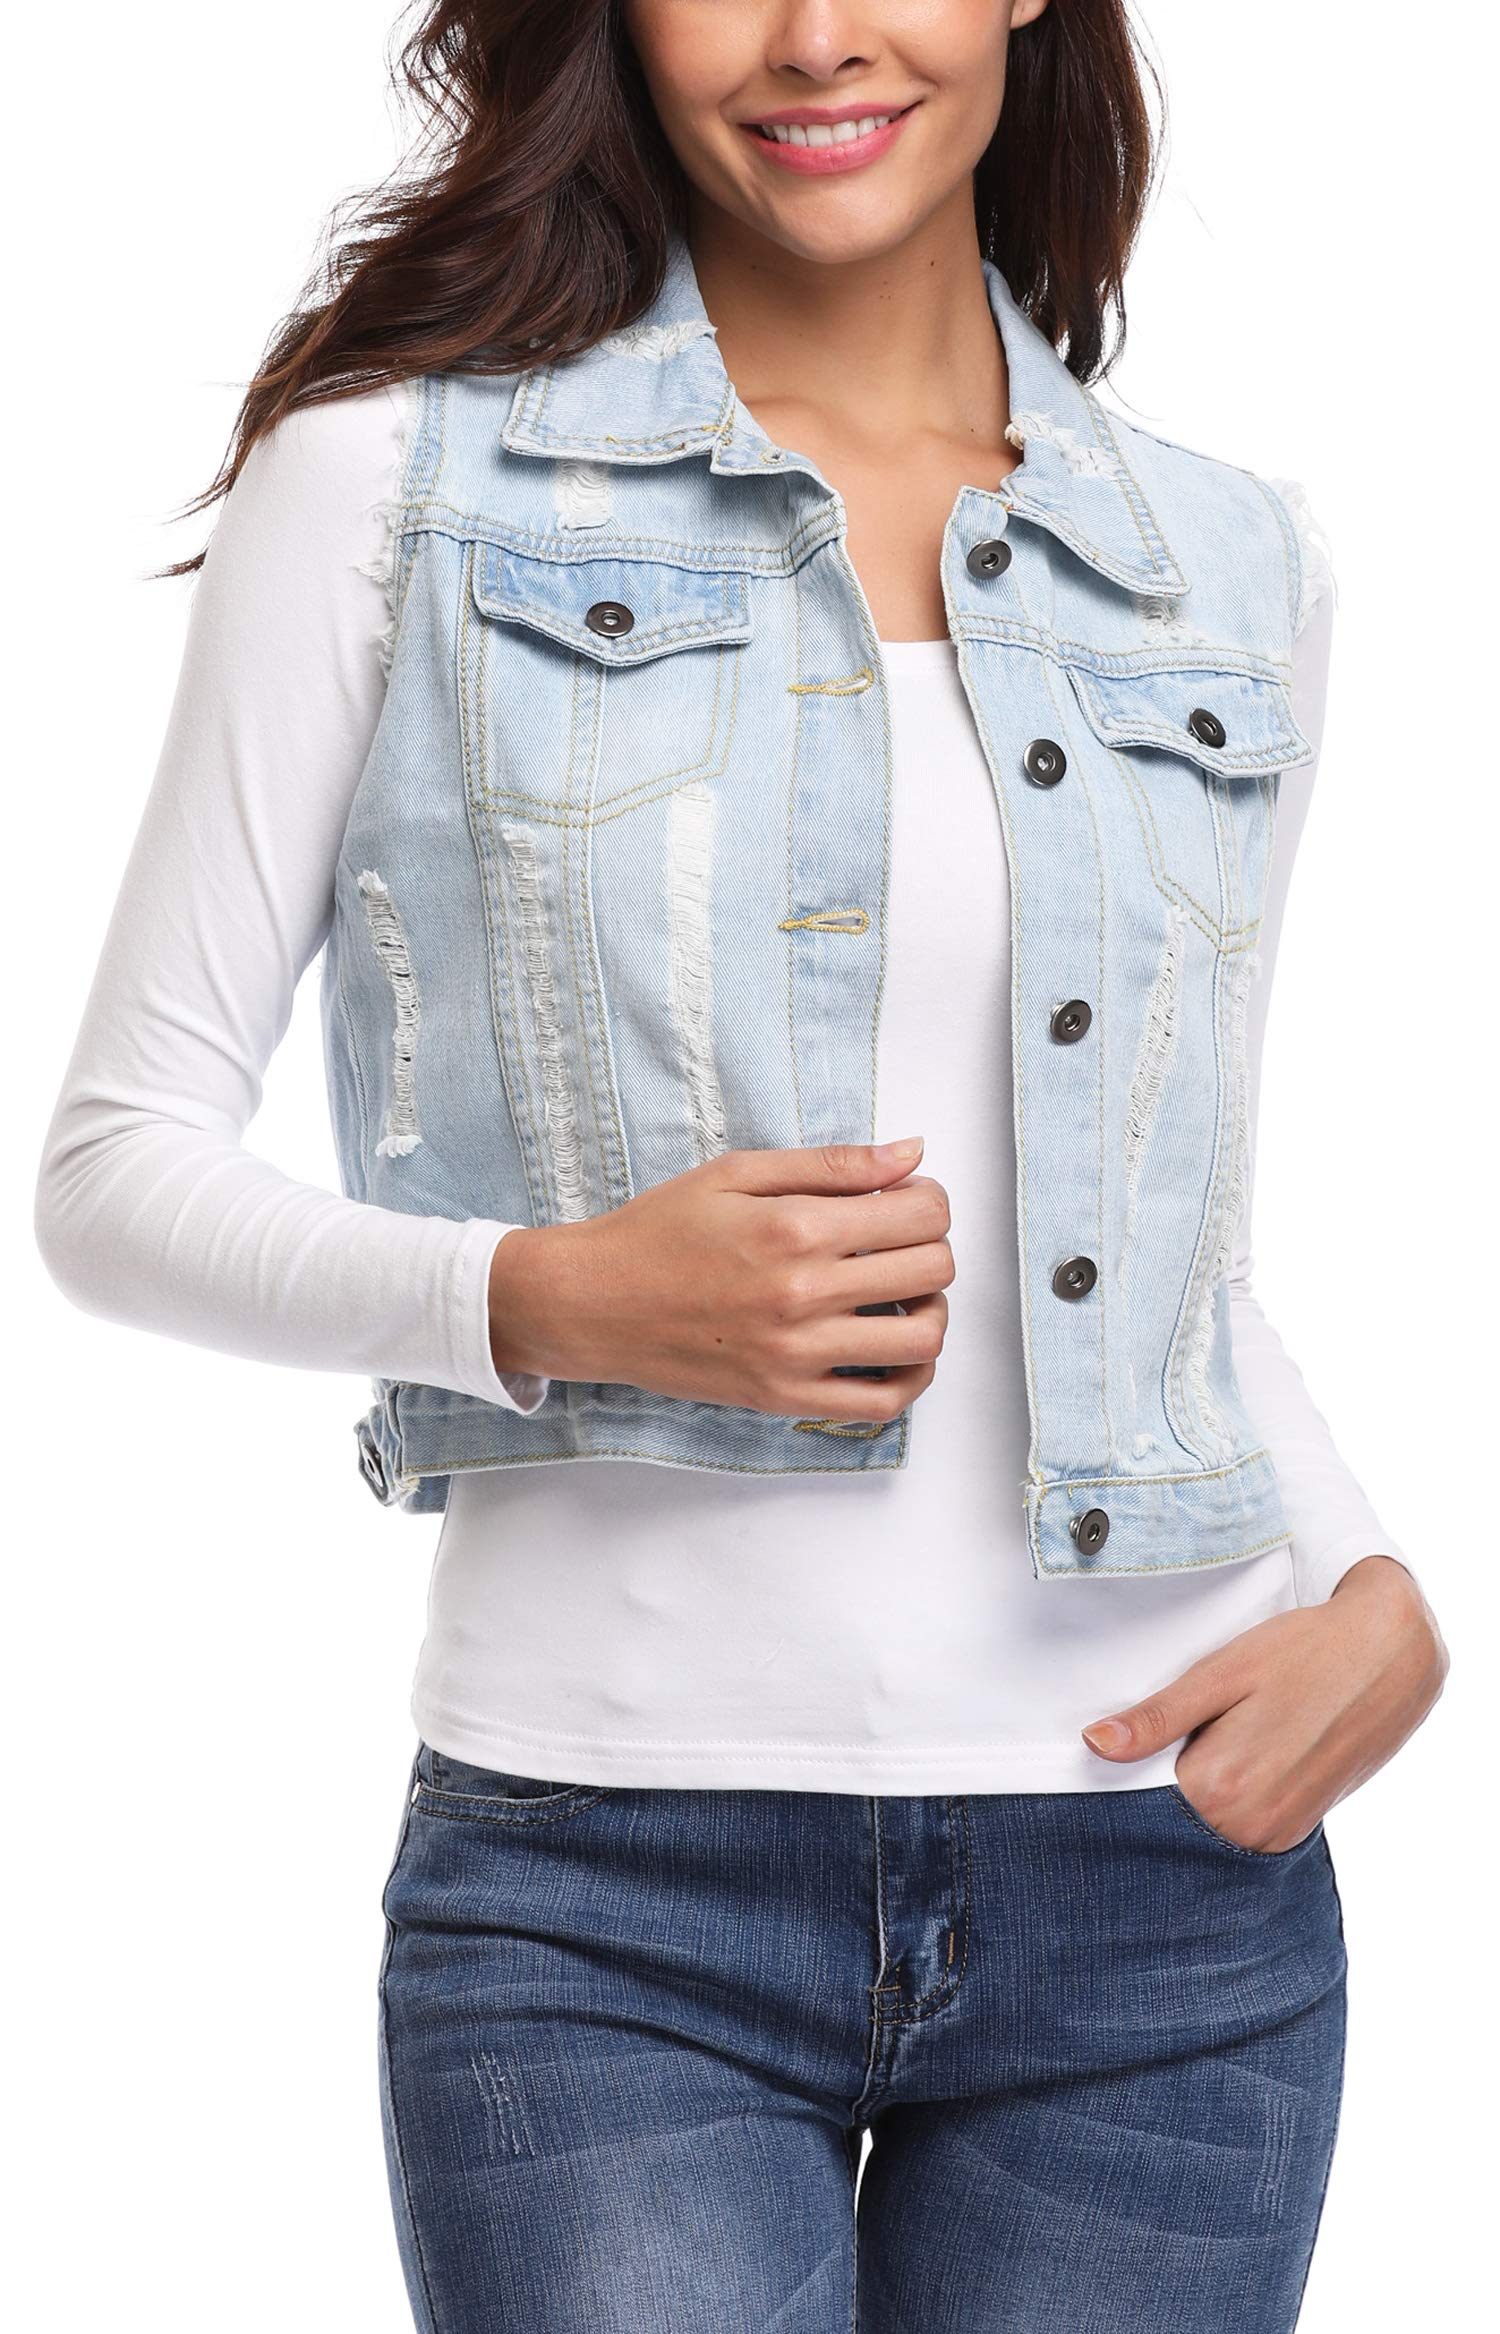 MISS MOLY Women's Sleeveless Denim Jacket Vest Turn Down Collar Buttoned Frayed Washed w 2 Chest Flap Pockets Light Blue XL by MISS MOLY (Image #5)